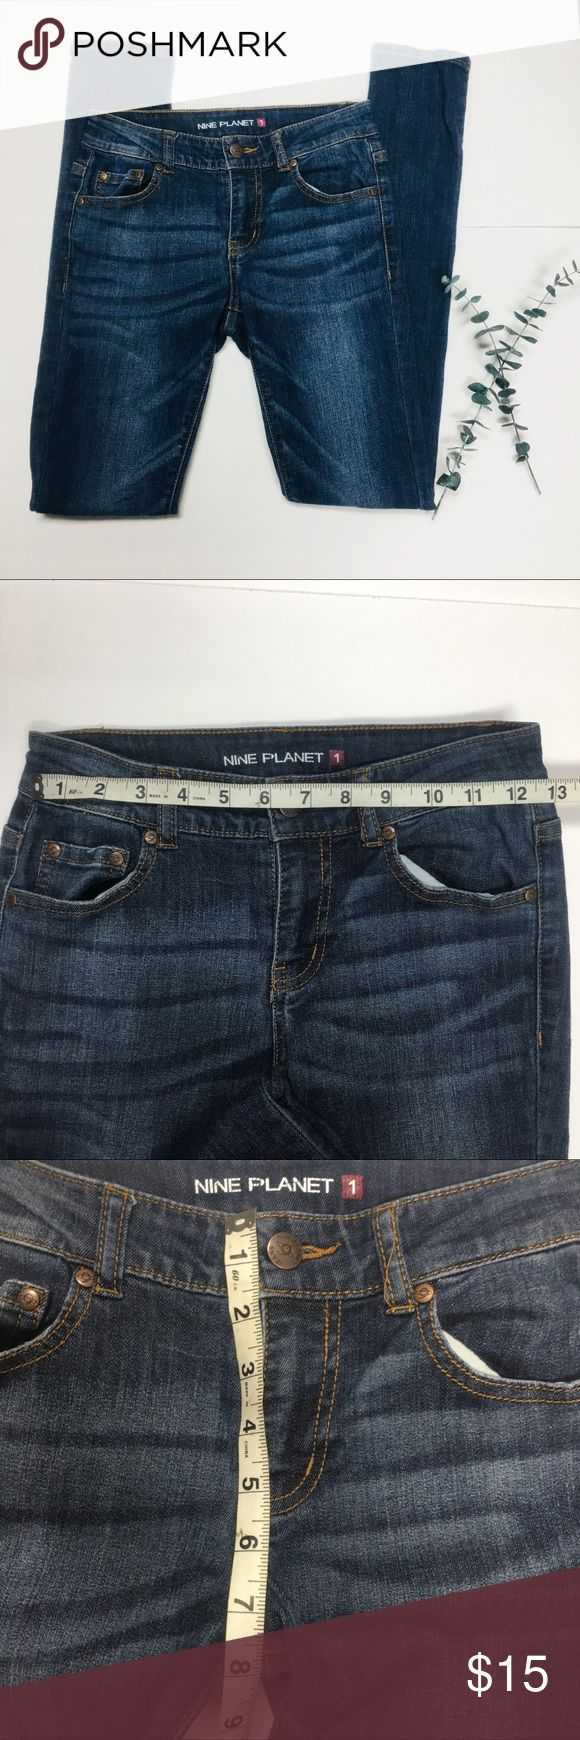 Nine planet used jeans size1 skinny juniors Great condition. Like new. Size 1 juniors. Made in China  74.5% cotton 24% polyester  15% spandex nine planet Jeans Skinny